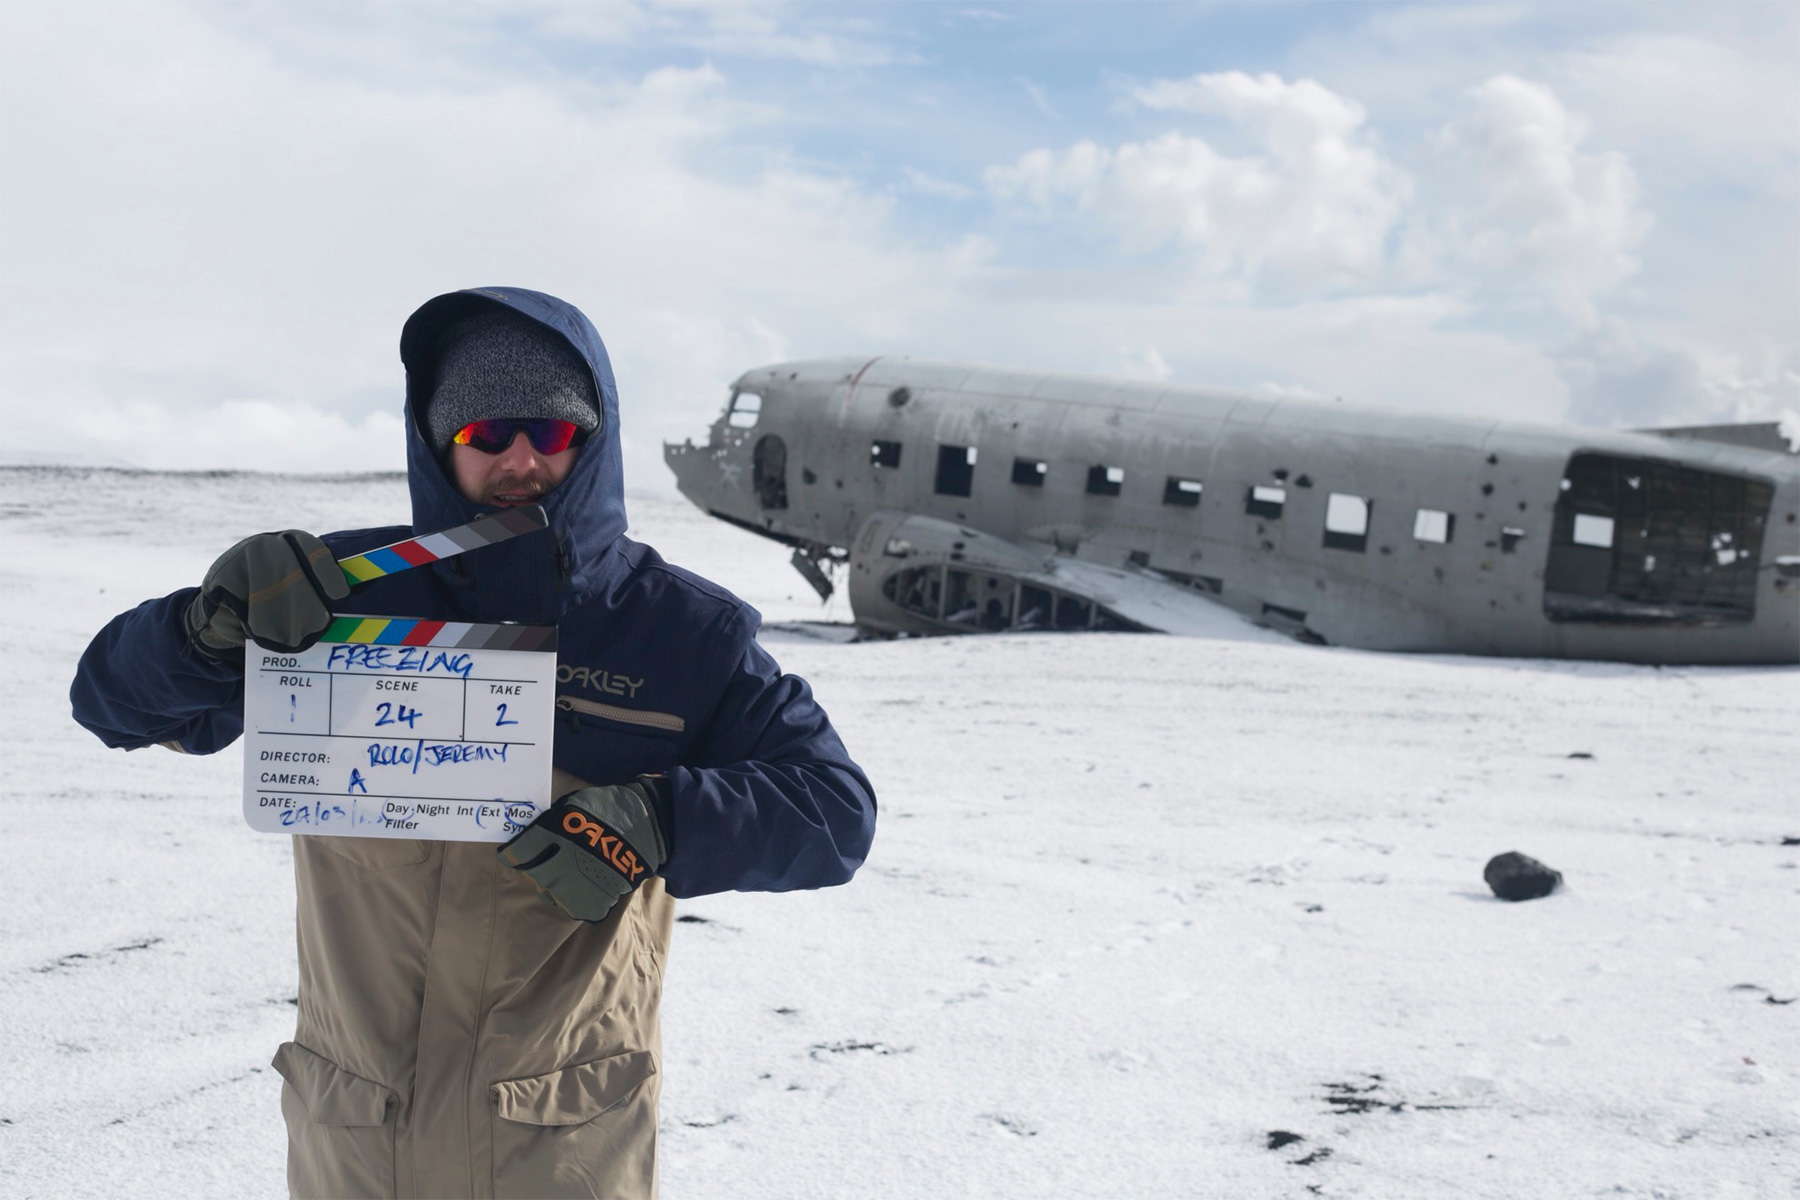 Surf filmmaker Rob Lockyear of Two Eyes Films on the set of Freezing in Iceland with a clapperboard in front of wrecked plane in snowfield